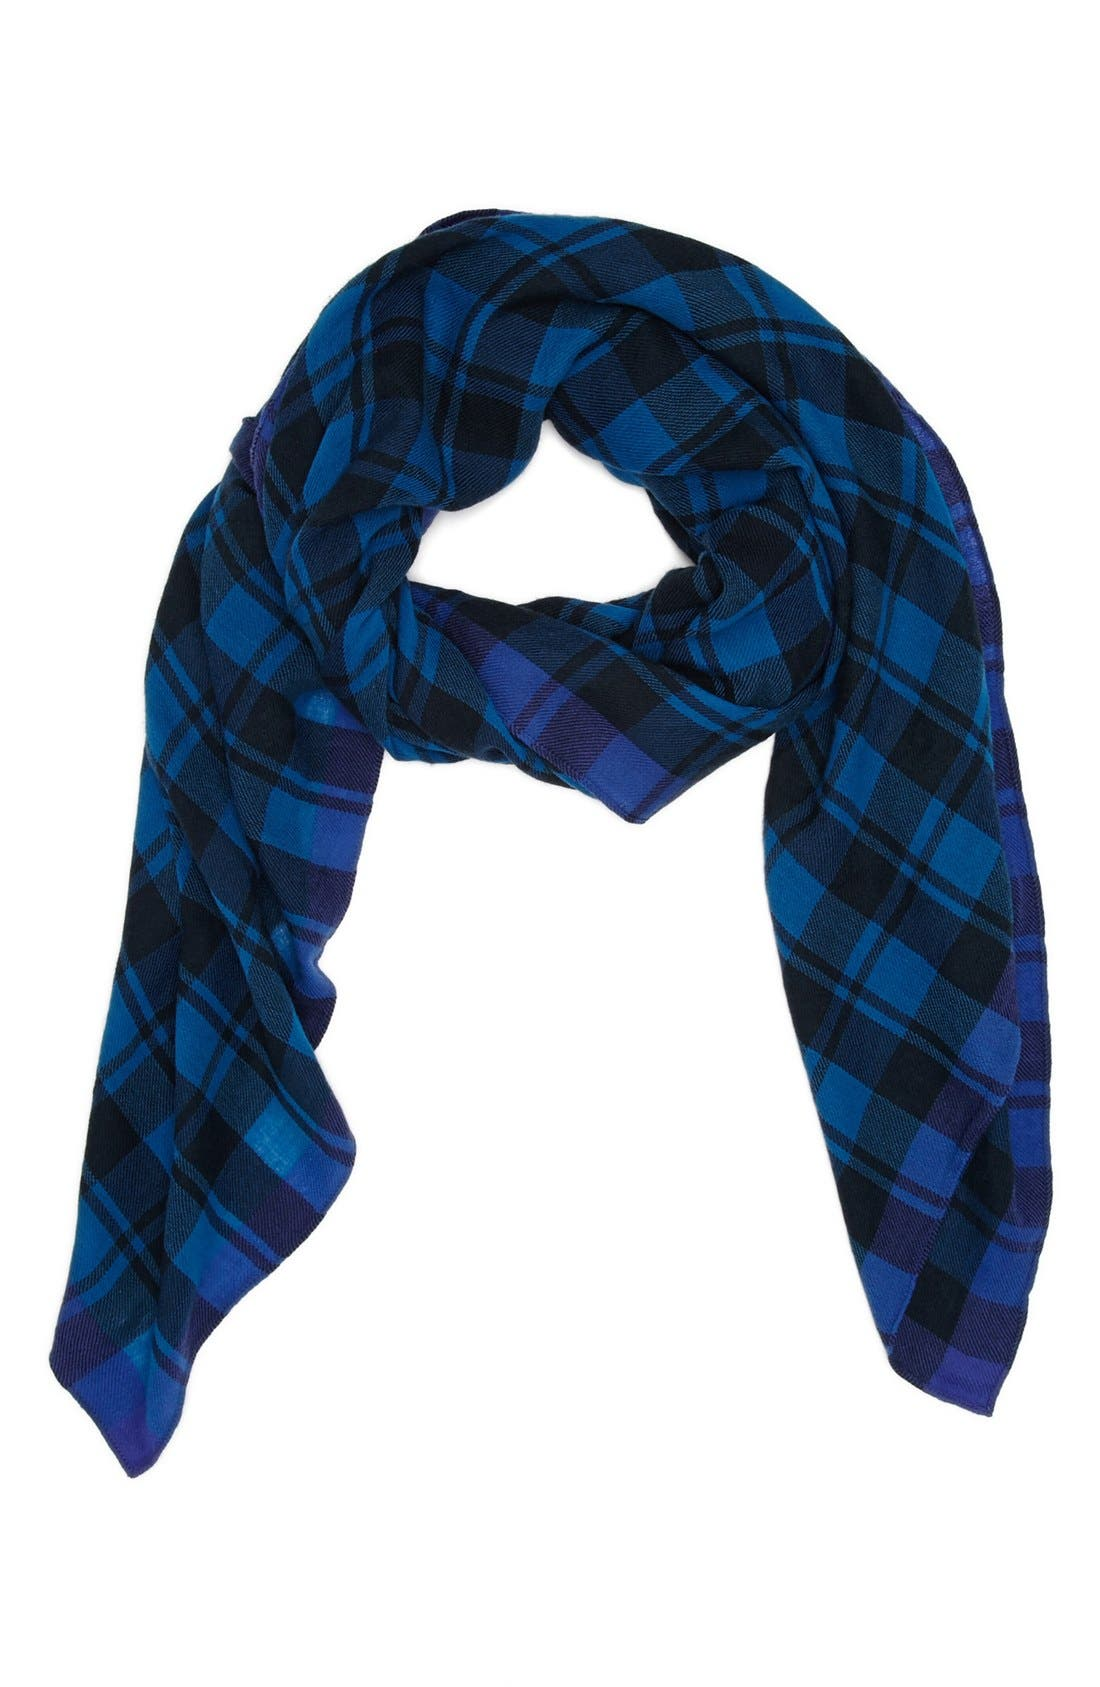 MARC JACOBS MARC BY MARC JACOBS Plaid Scarf, Main, color, 400